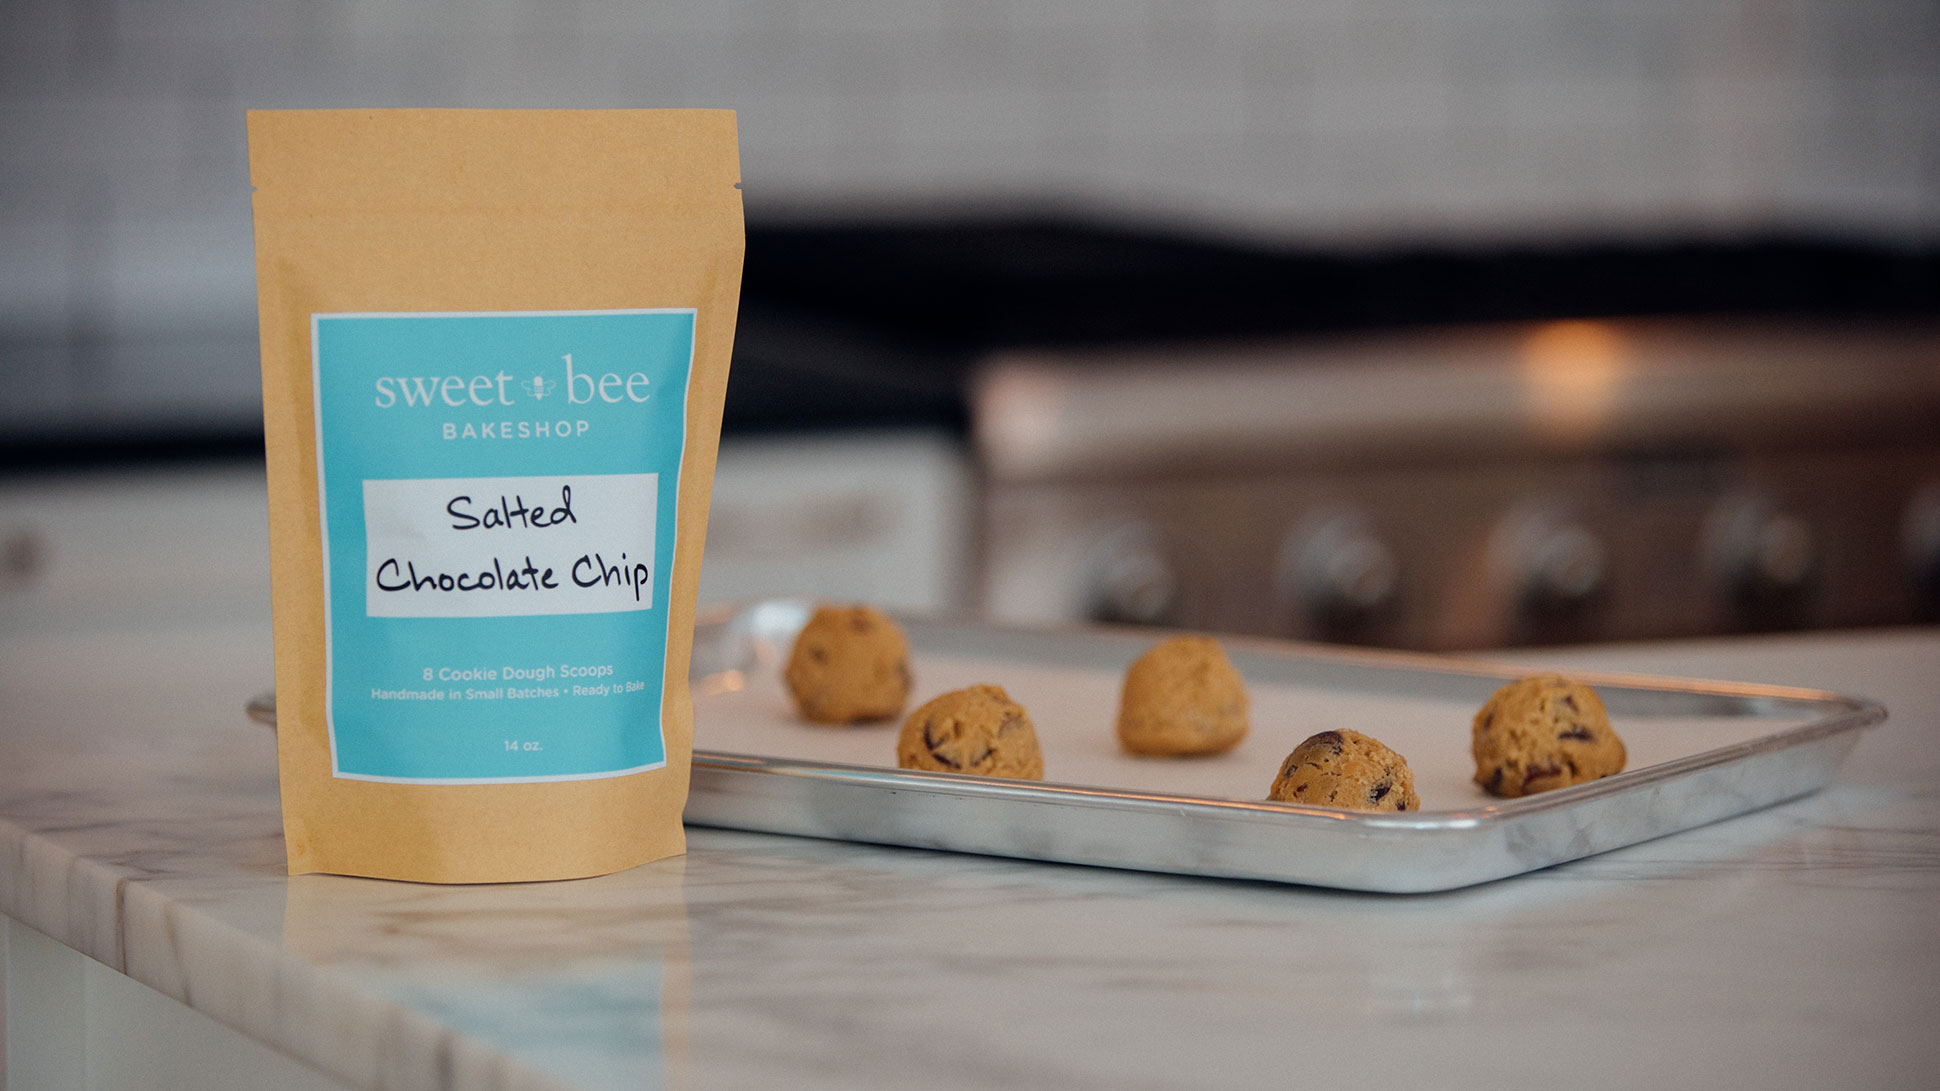 Bag of Sweet Bee Bakeshop Salted Chocolate Chip Flavor Frozen Cookie Dough